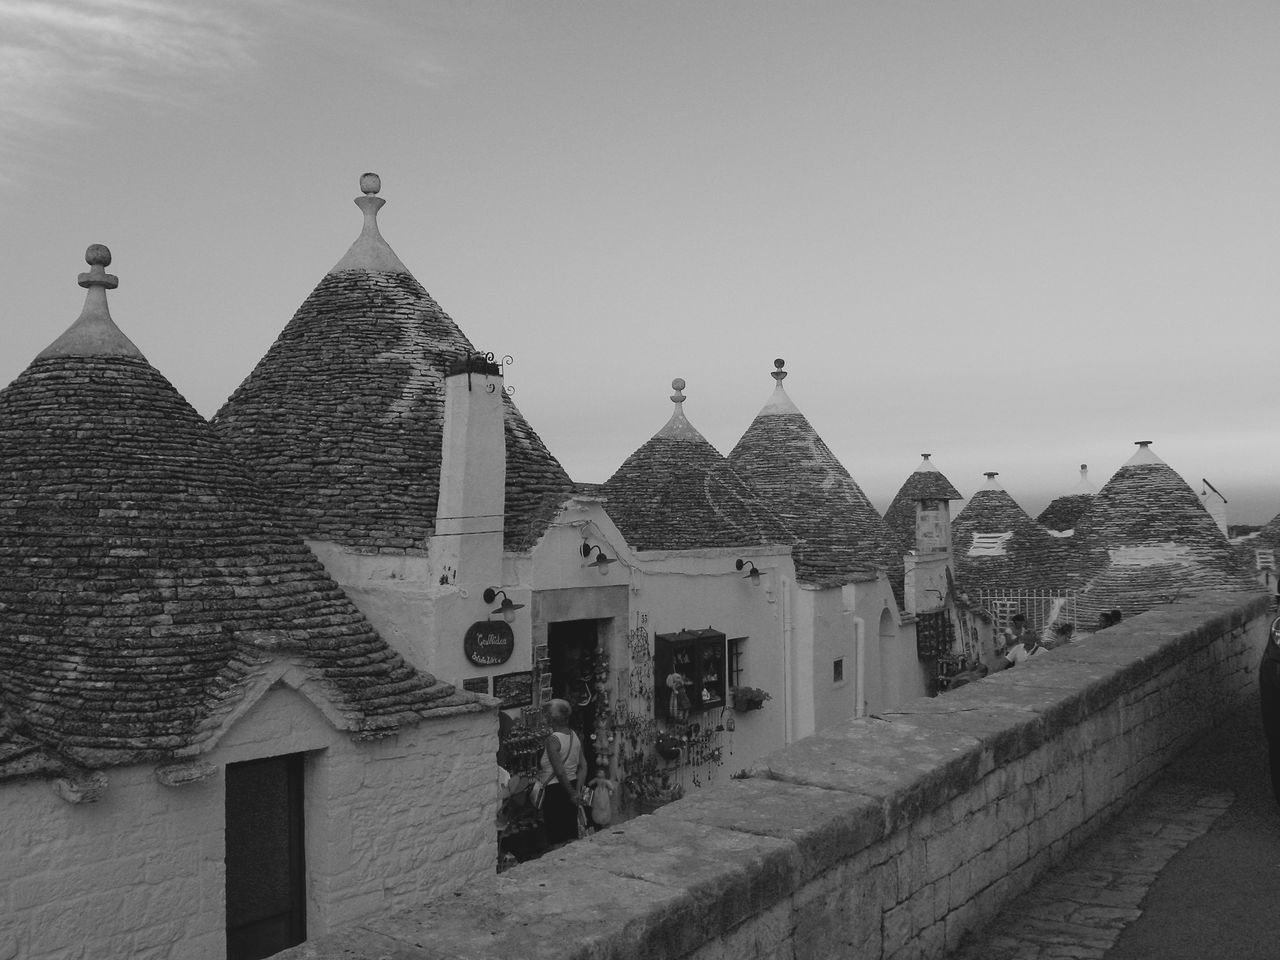 Alberobello Alberobello - Puglia Alberobello City Alberobellocity Alberobelloexperience Alberobellophotocontest Architecture Building Exterior Built Structure Clear Sky Day History No People Outdoors Place Of Worship Sky